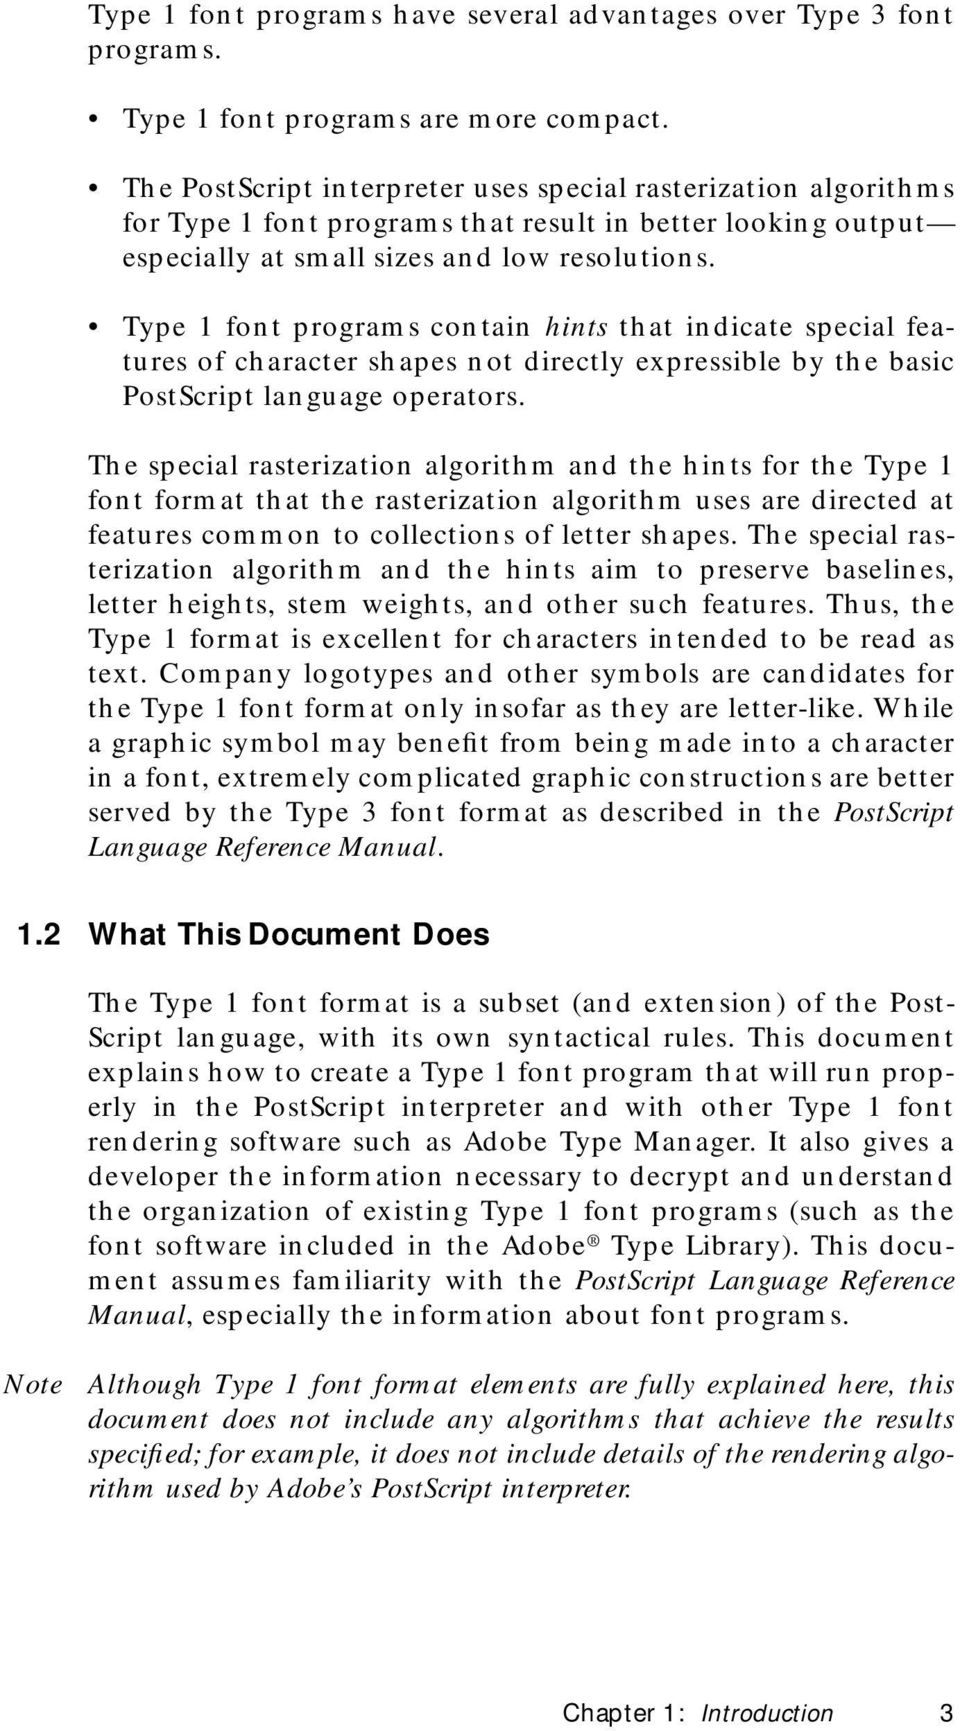 Type 1 font programs contain hints that indicate special features of character shapes not directly expressible by the basic PostScript language operators.